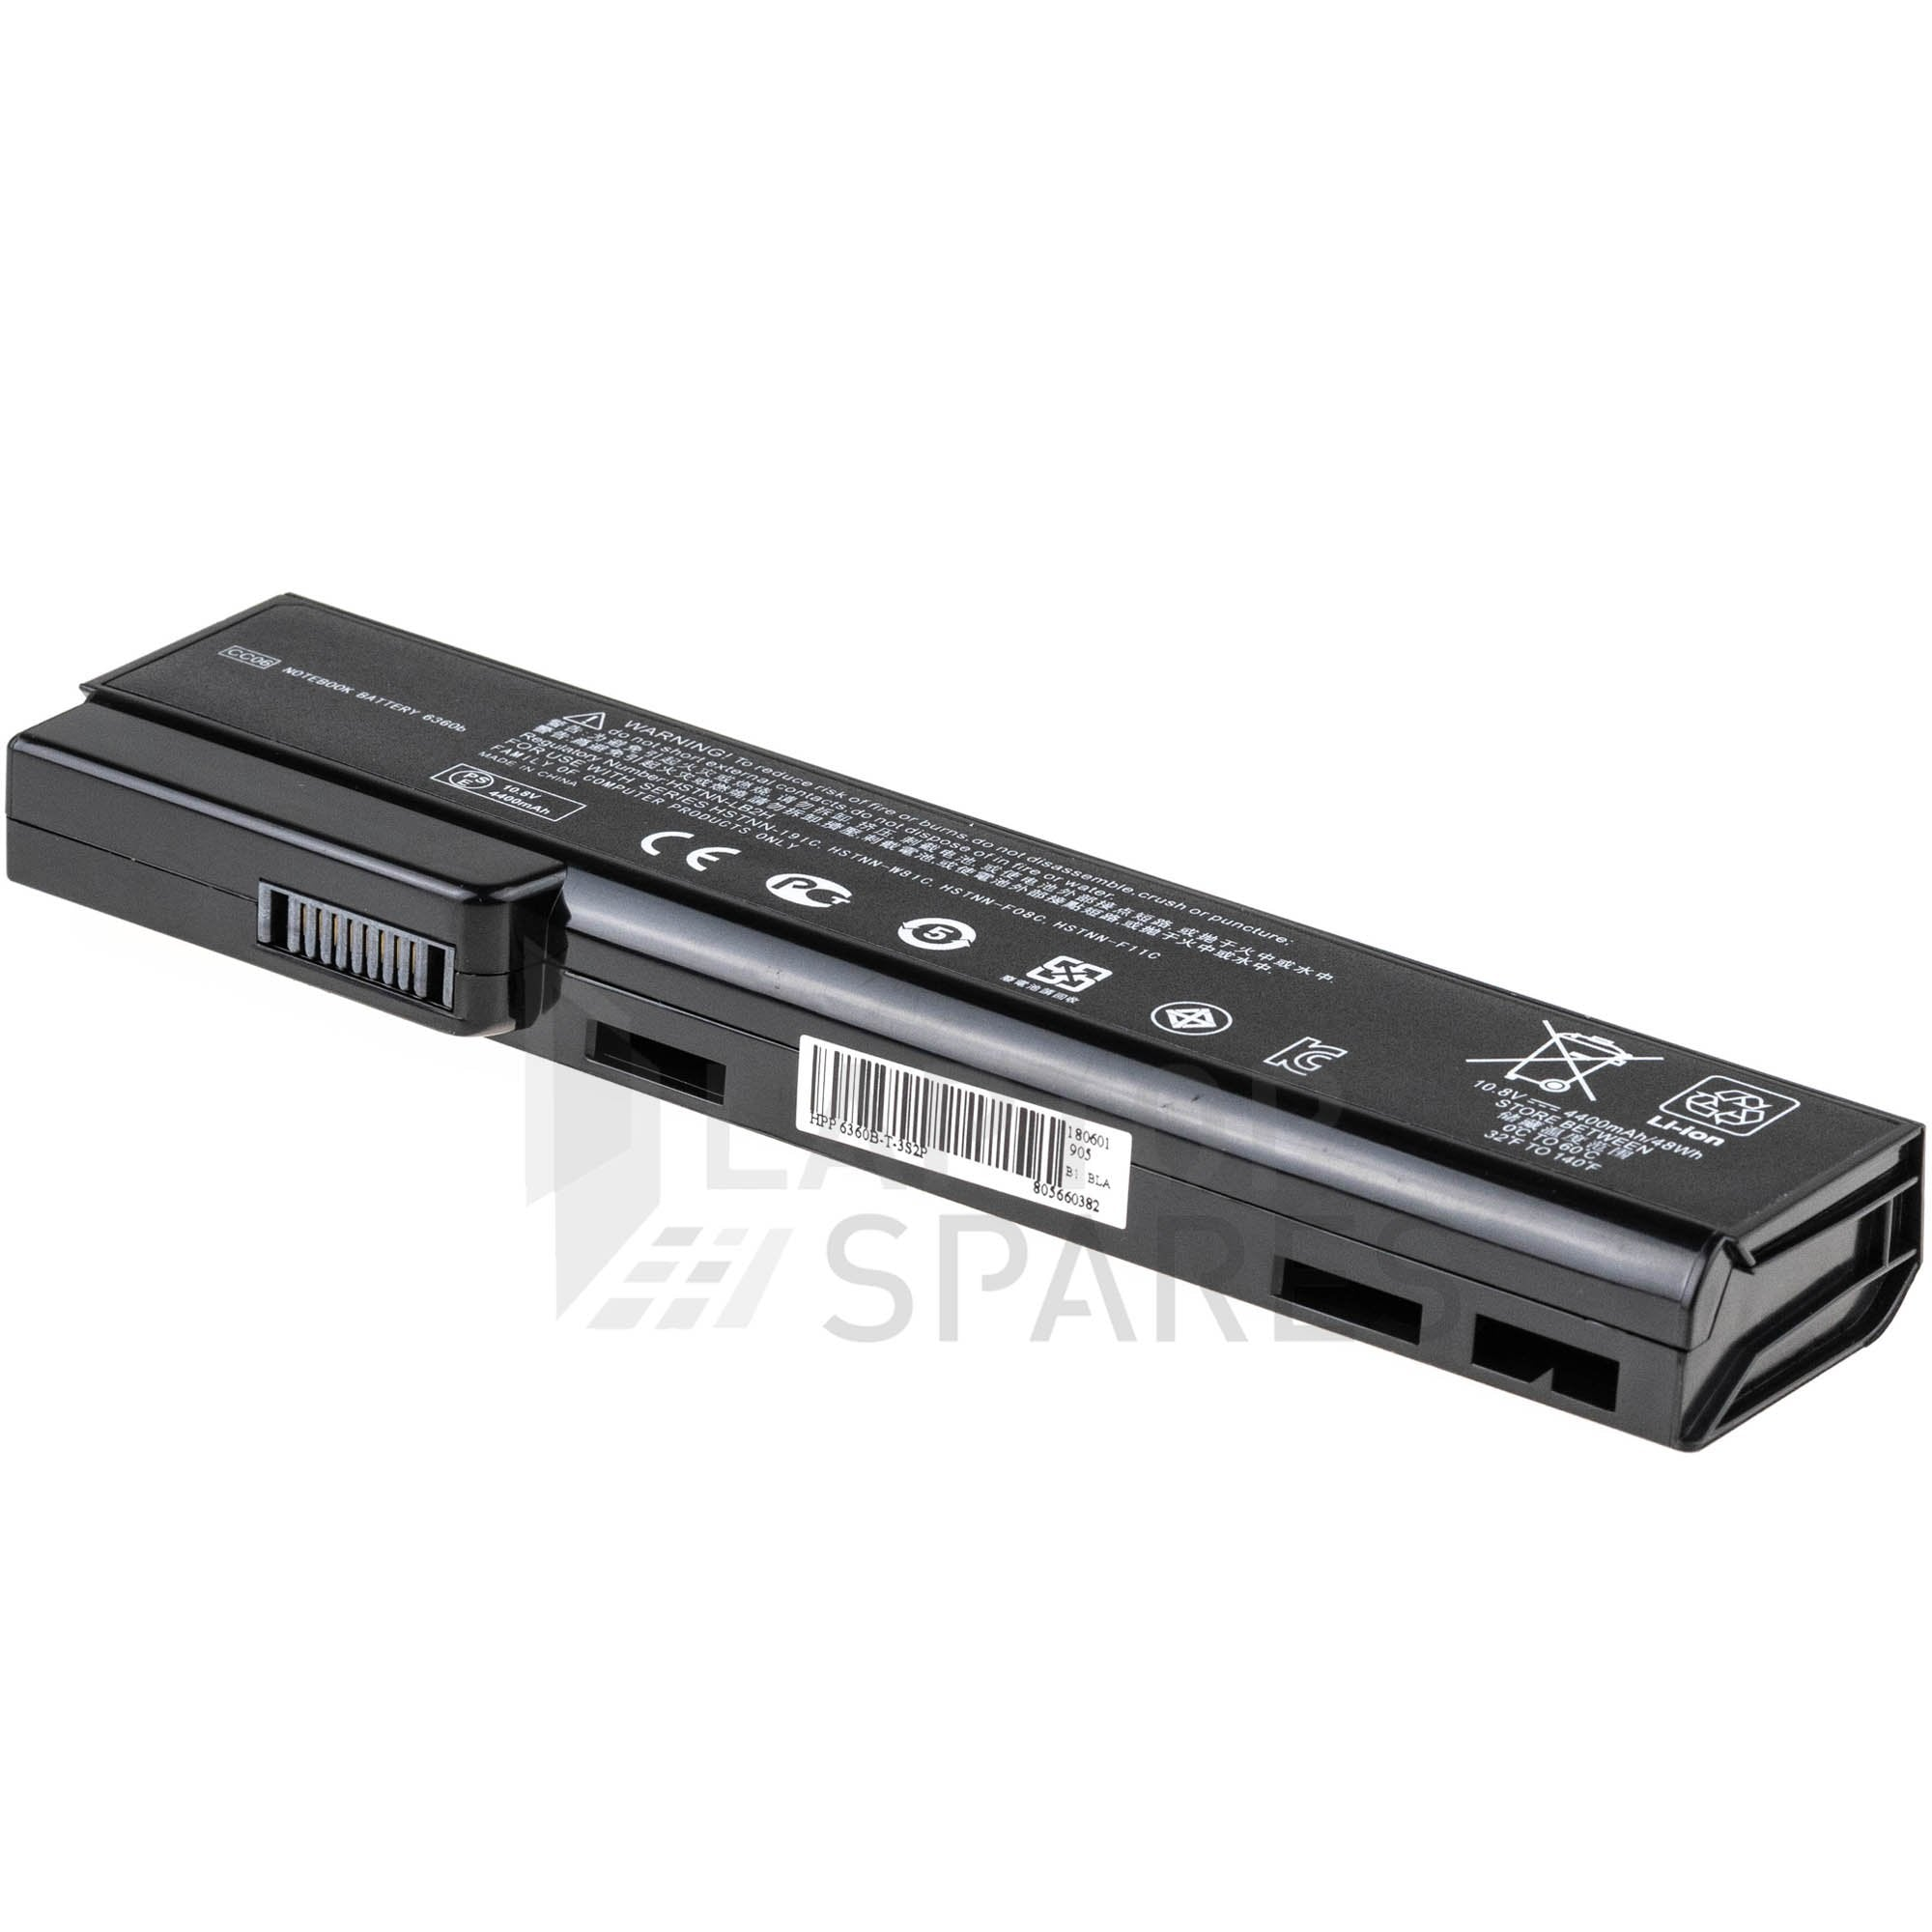 HP EliteBook 8560p 4400mAh 6 Cell Battery